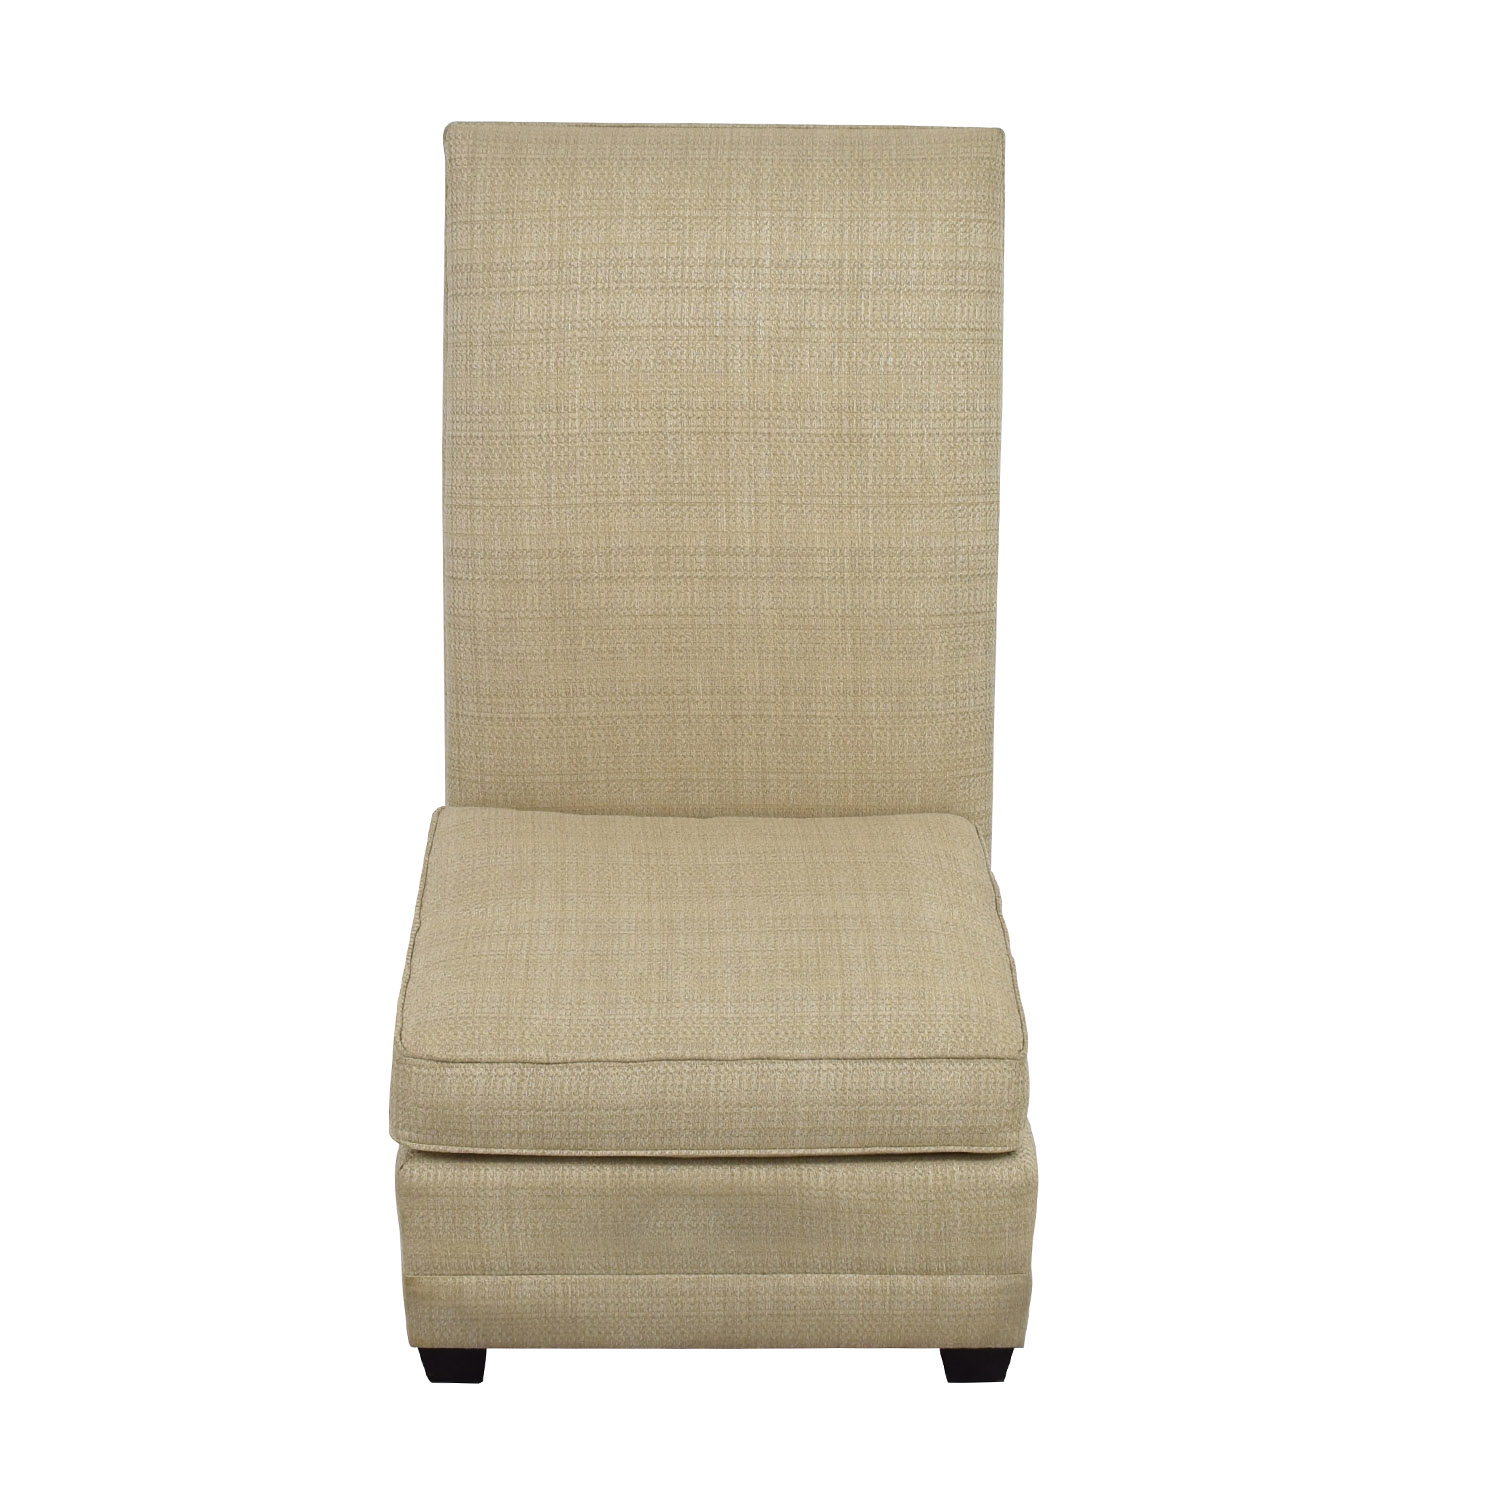 ... Buy Bernhardt Beaumont Cream Accent Chair Bernhardt Accent Chairs ...